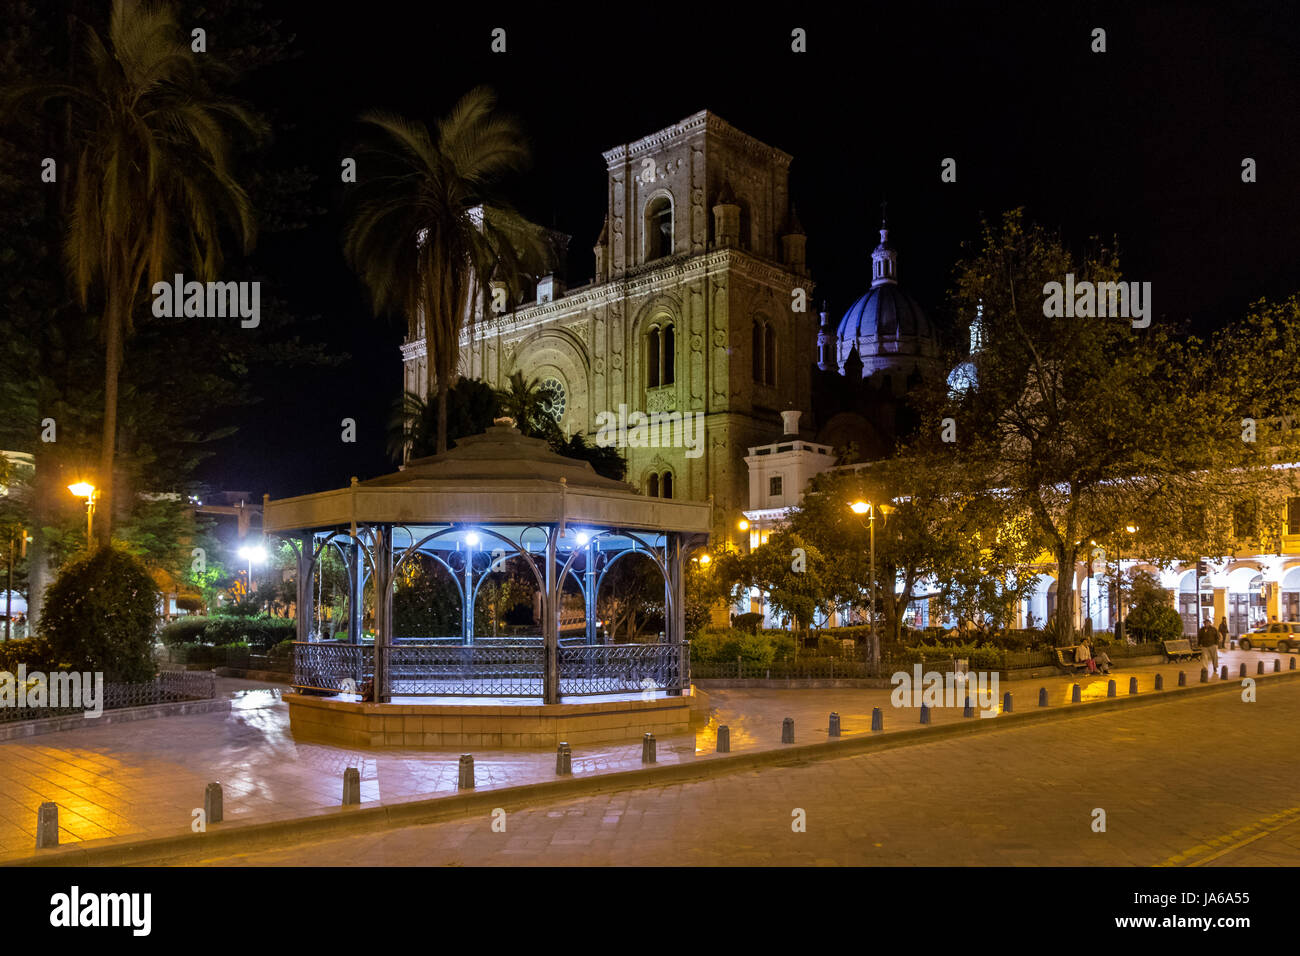 Park Calderon and Inmaculada Concepcion Cathedral at night - Cuenca, Ecuador - Stock Image